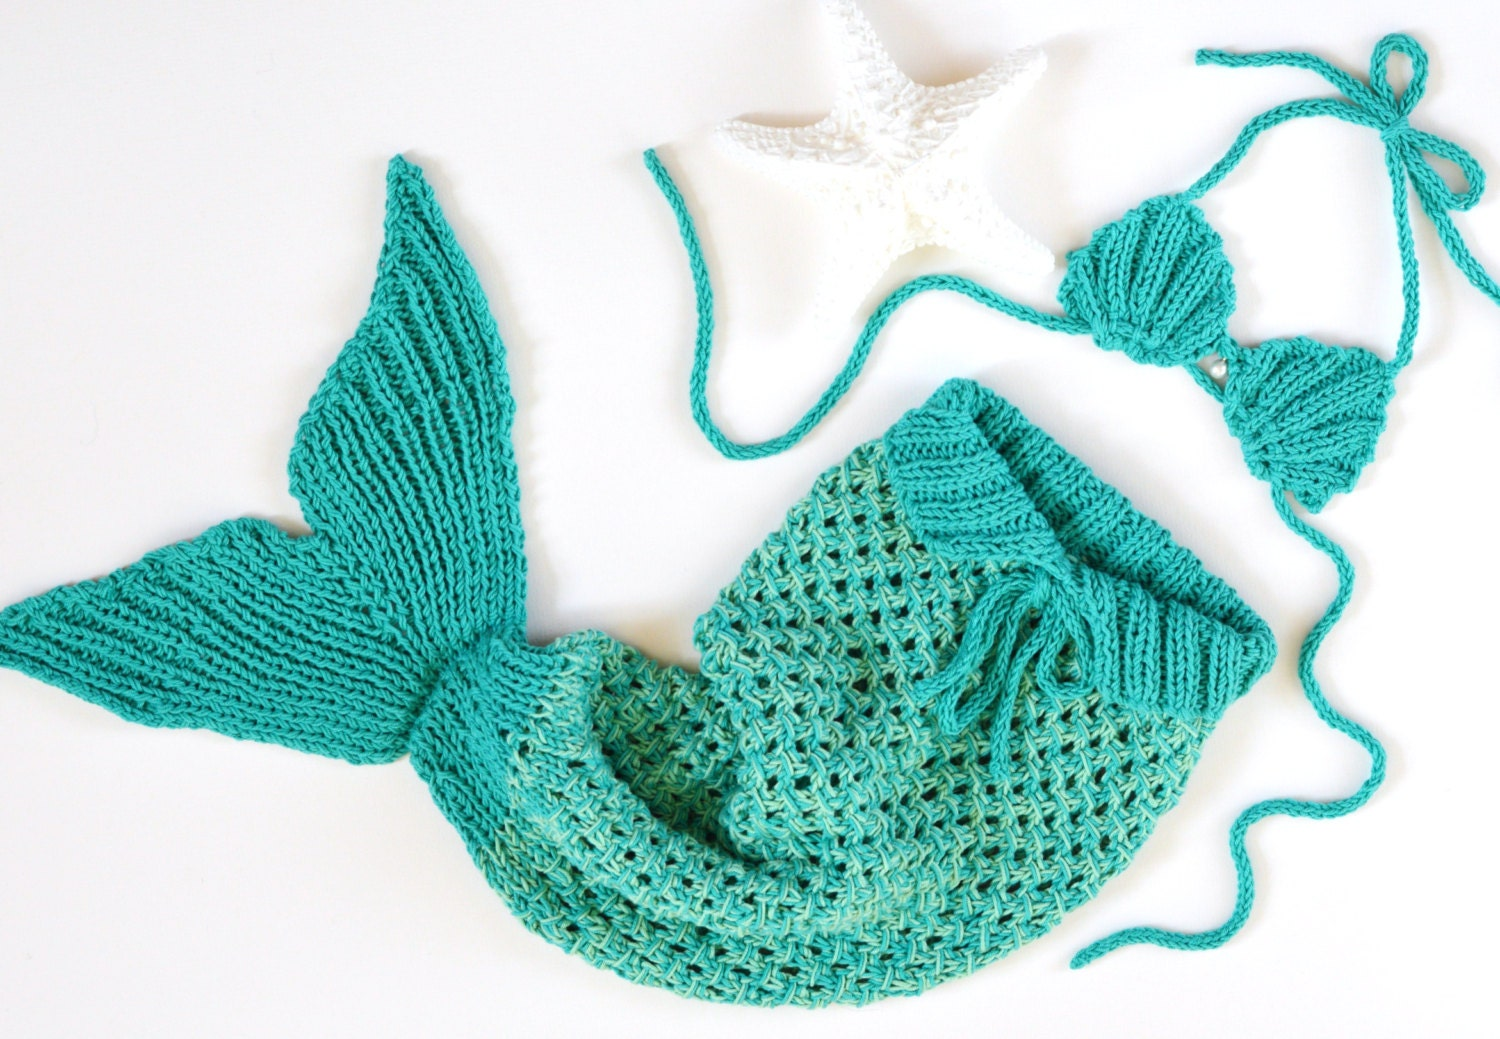 Knitting Pattern For Baby Mermaid Blanket : KNITTING PATTERN Baby Mermaid Tail Blanket 5 Sizes newborn-1